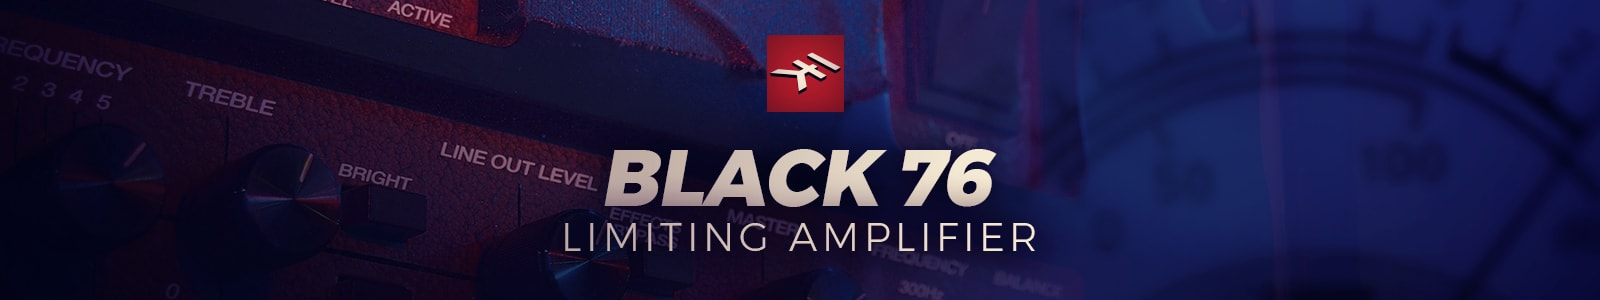 Black 76 Limiting Amp